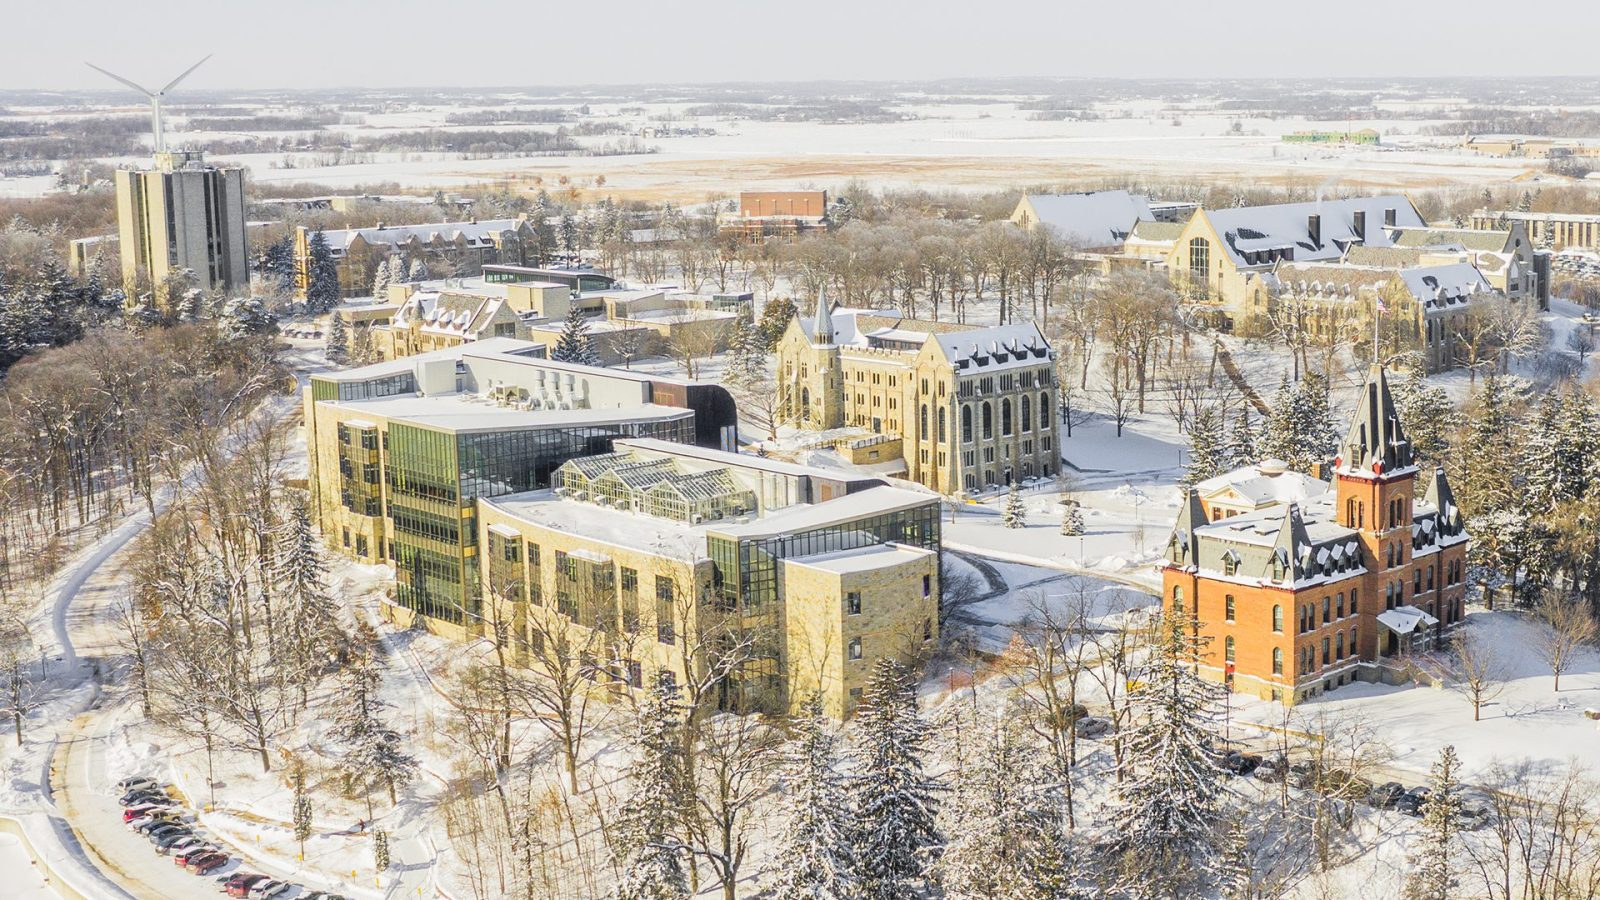 Aerial photo of the St. Olaf College campus covered in snow.